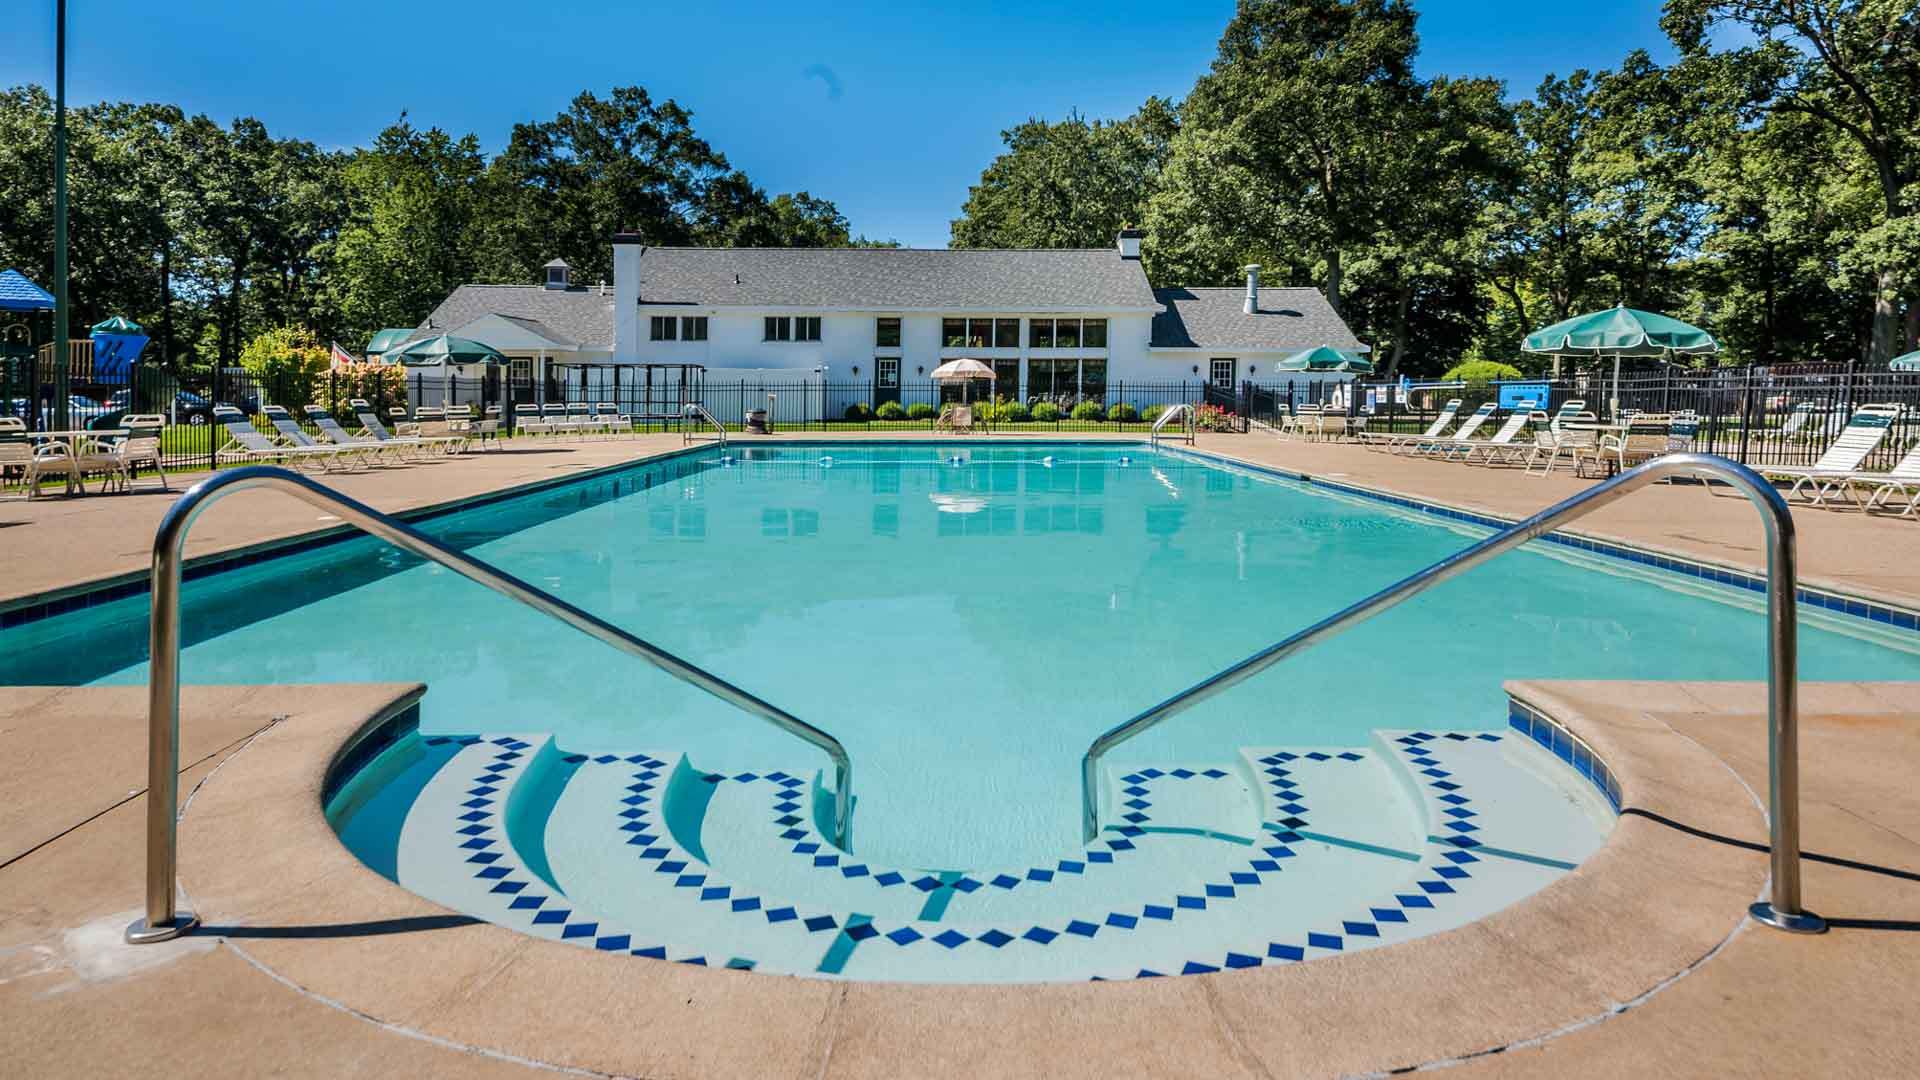 Apple Carr Manufactured Home Community Swimming Pool in Muskegon, MI